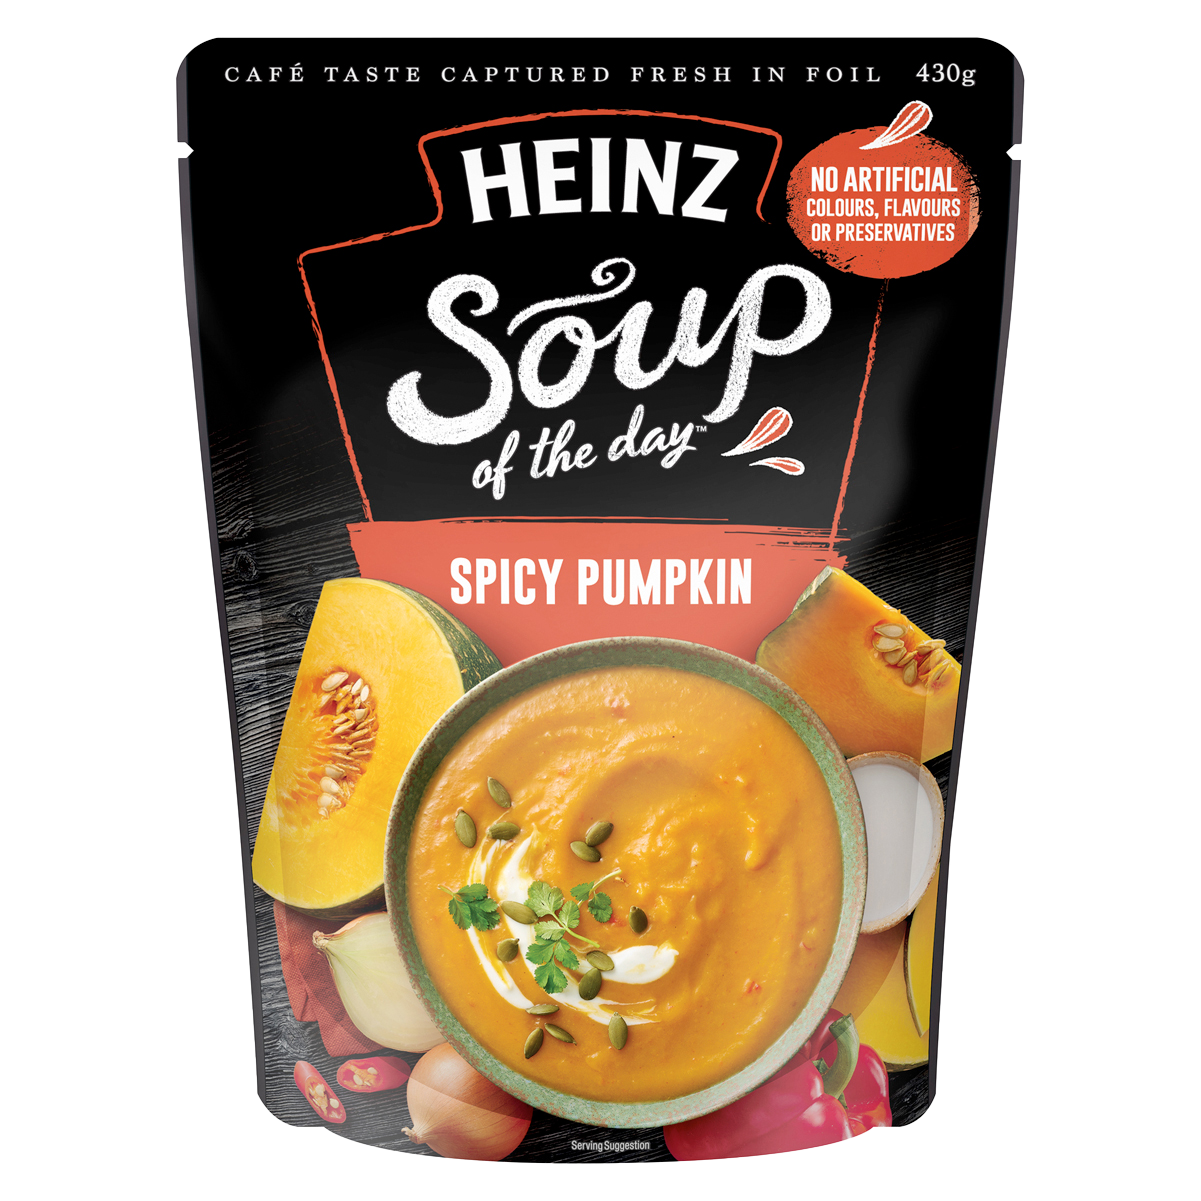 Heinz Soup of the Day Spicy Pumpkin